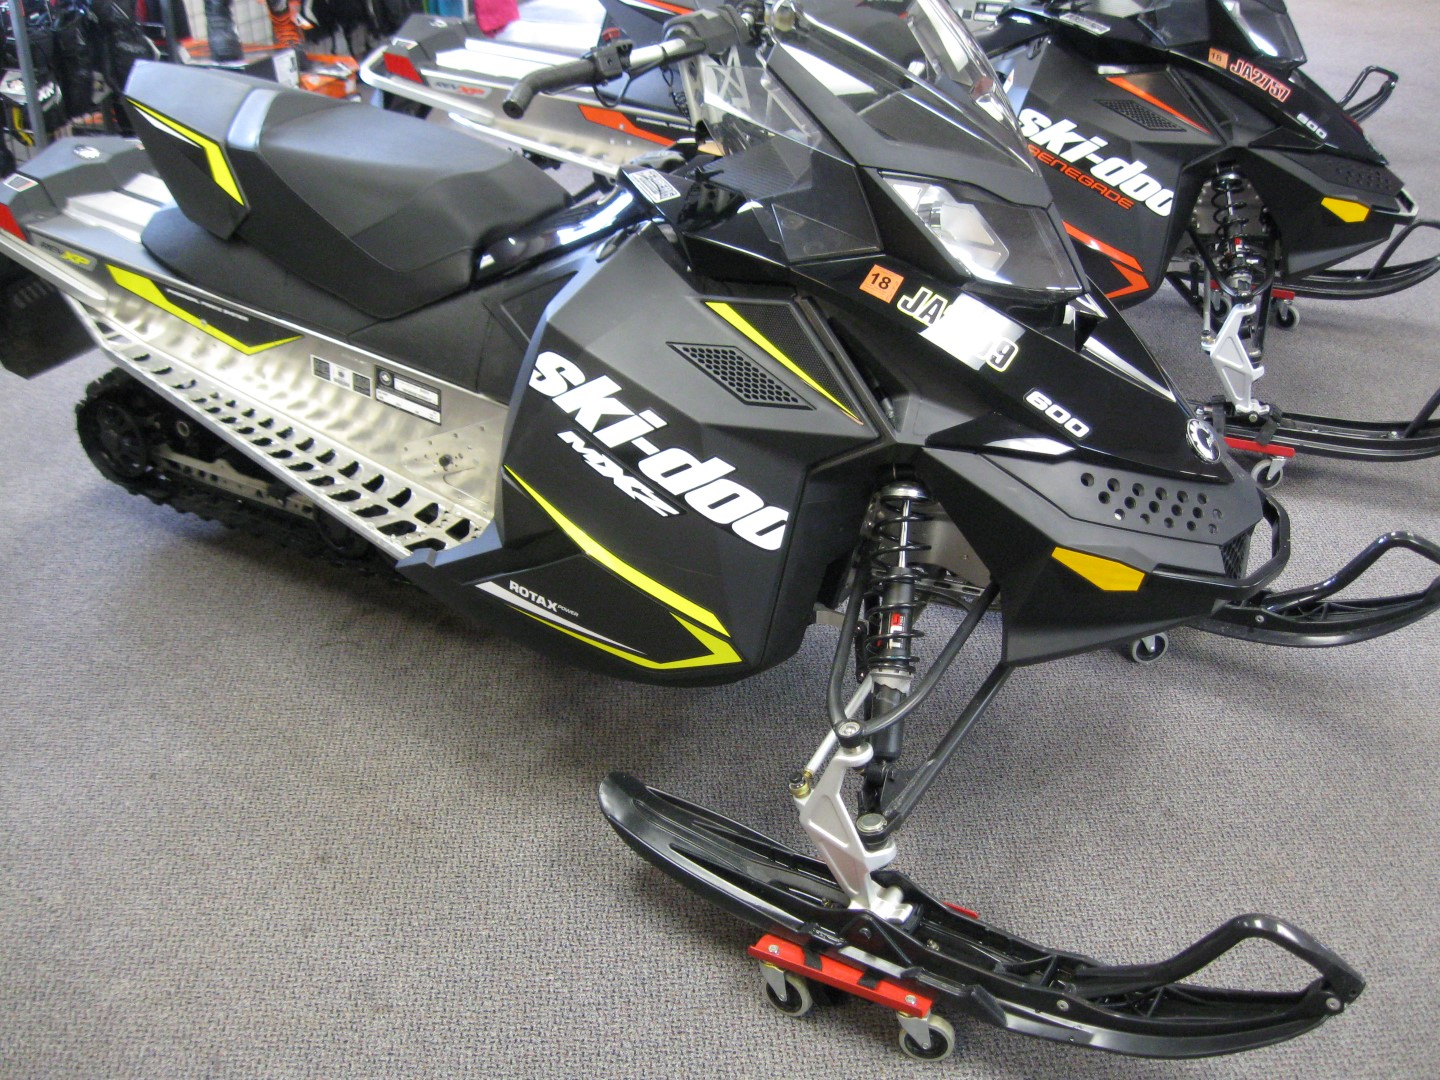 2016 Skidoo Rev XP MXZ 600 Sport Snowmobile for sale Seaberg Motorsports Crosslake Minnesota Black and yellow